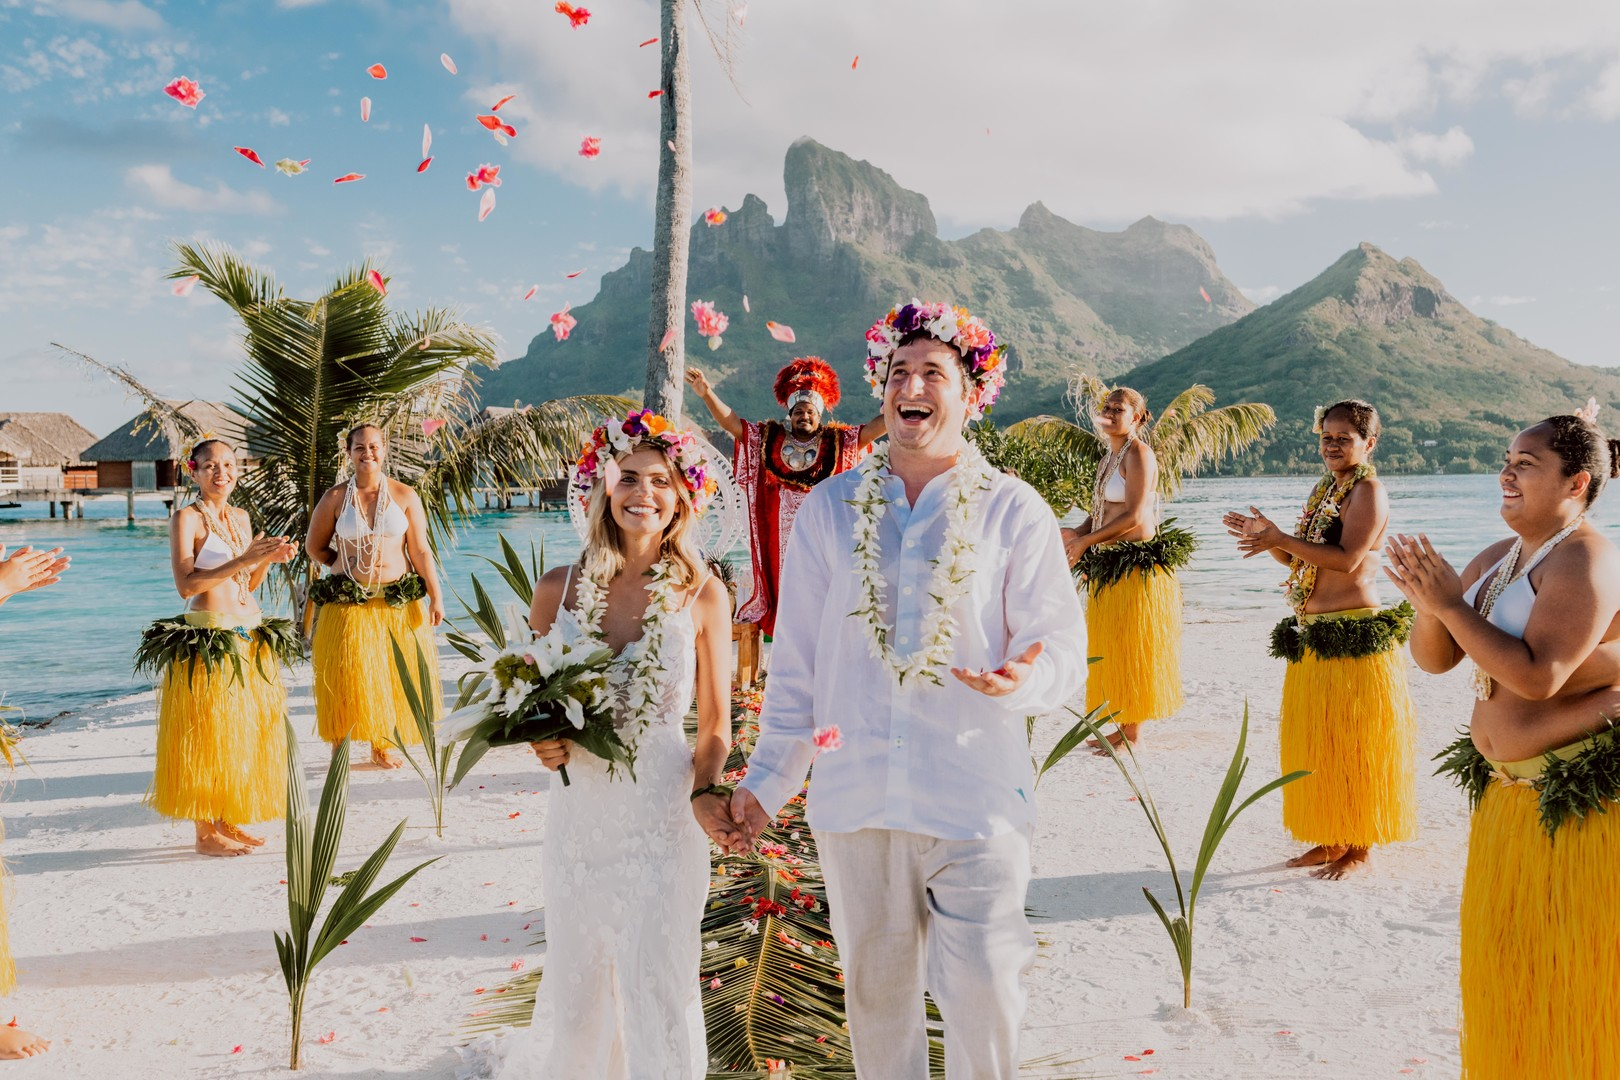 Wedded couple in Bora Bora happy with petals in the air